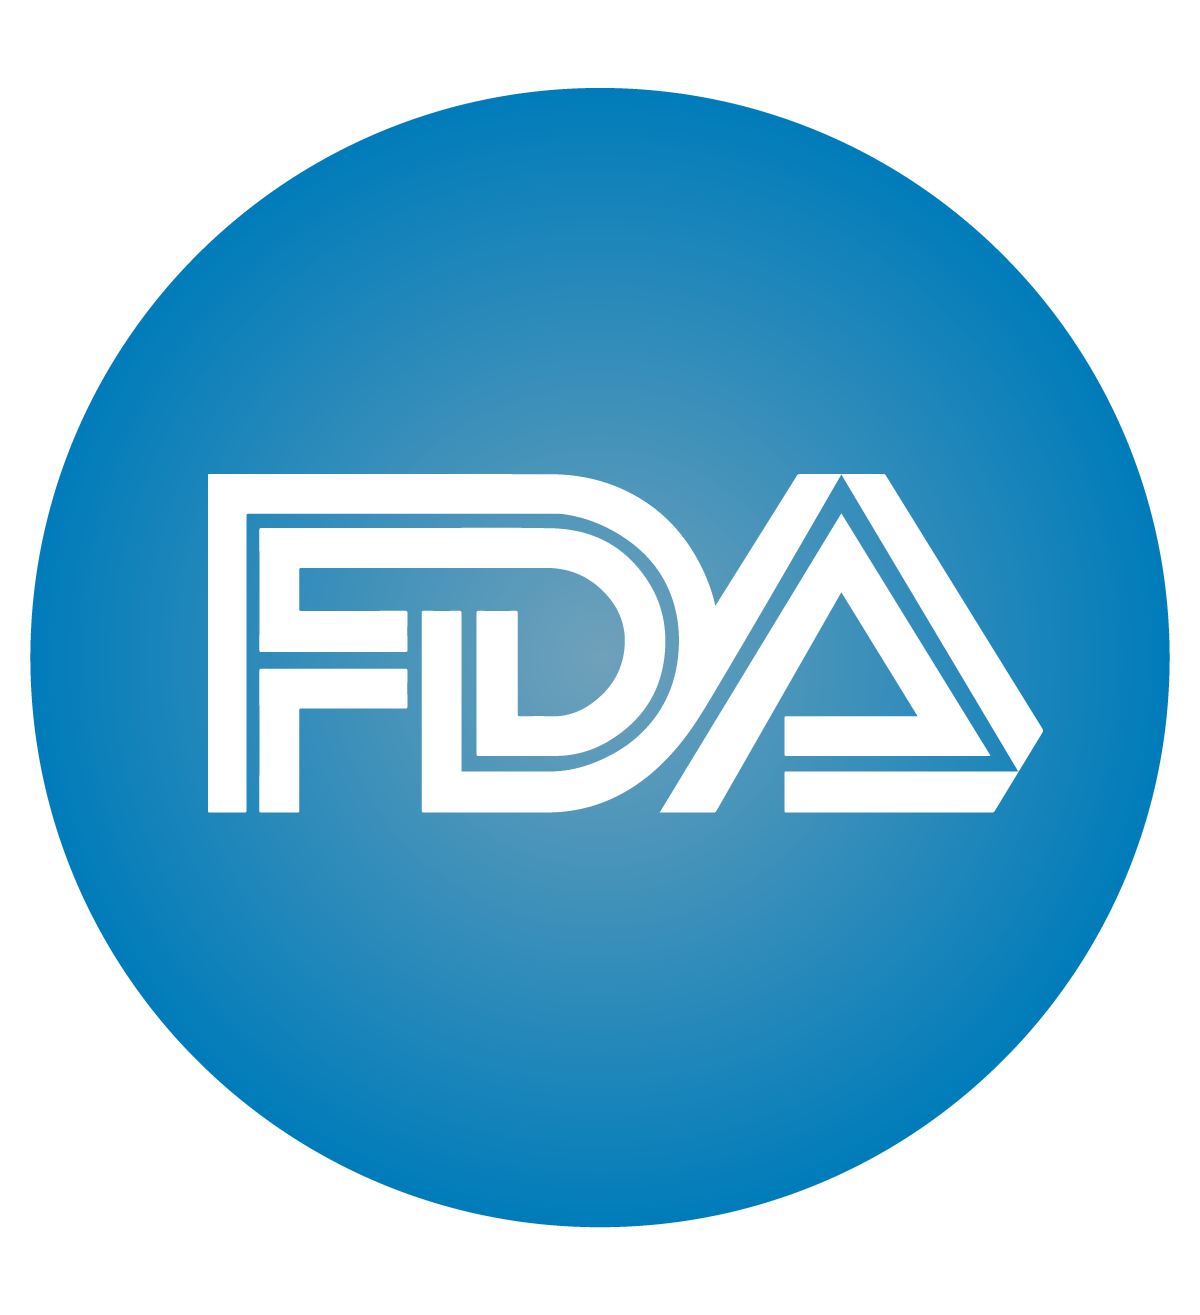 FDA Registered: OTC & Exempt Medical Devices - Northwest Cosmetic Labs is registered with the FDA to produce over-the-counter Drug products and continues to regulate these practices. Northwest Cosmetic Labs is also registered with the FDA to produce Exempt Medical Device products and continues to regulate these practices.